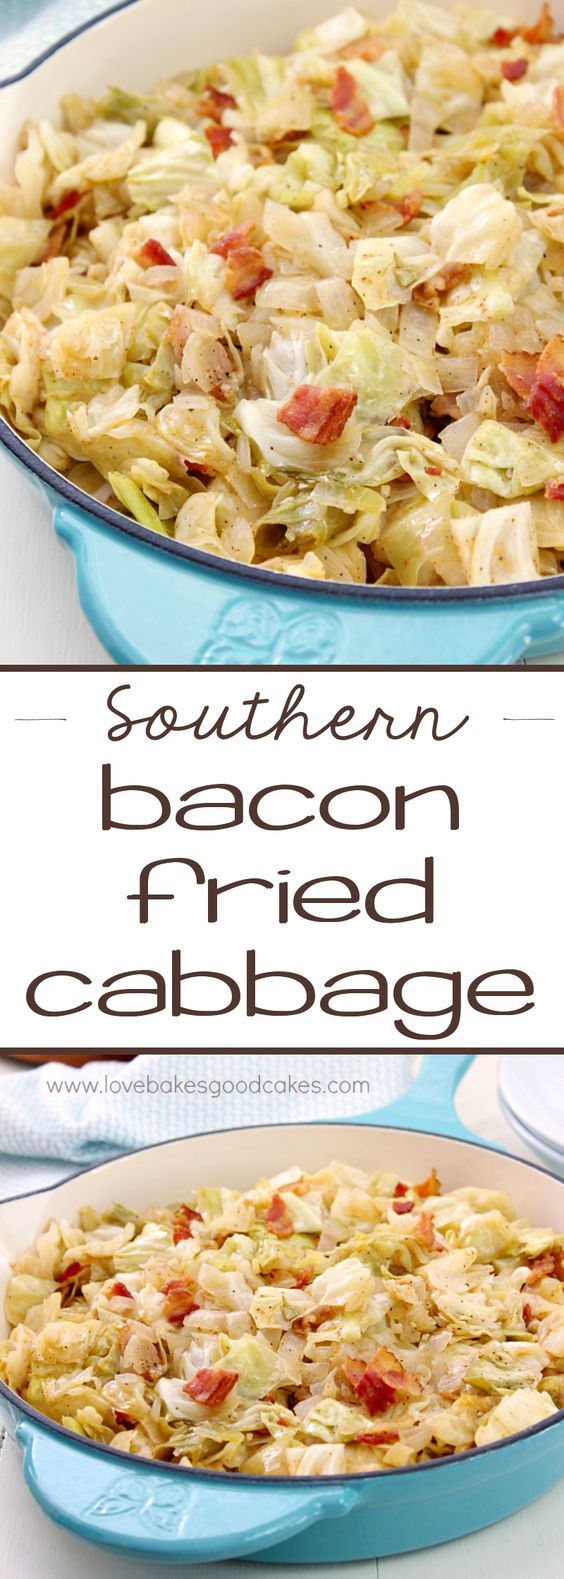 Southern Bacon Fried Cabbage.